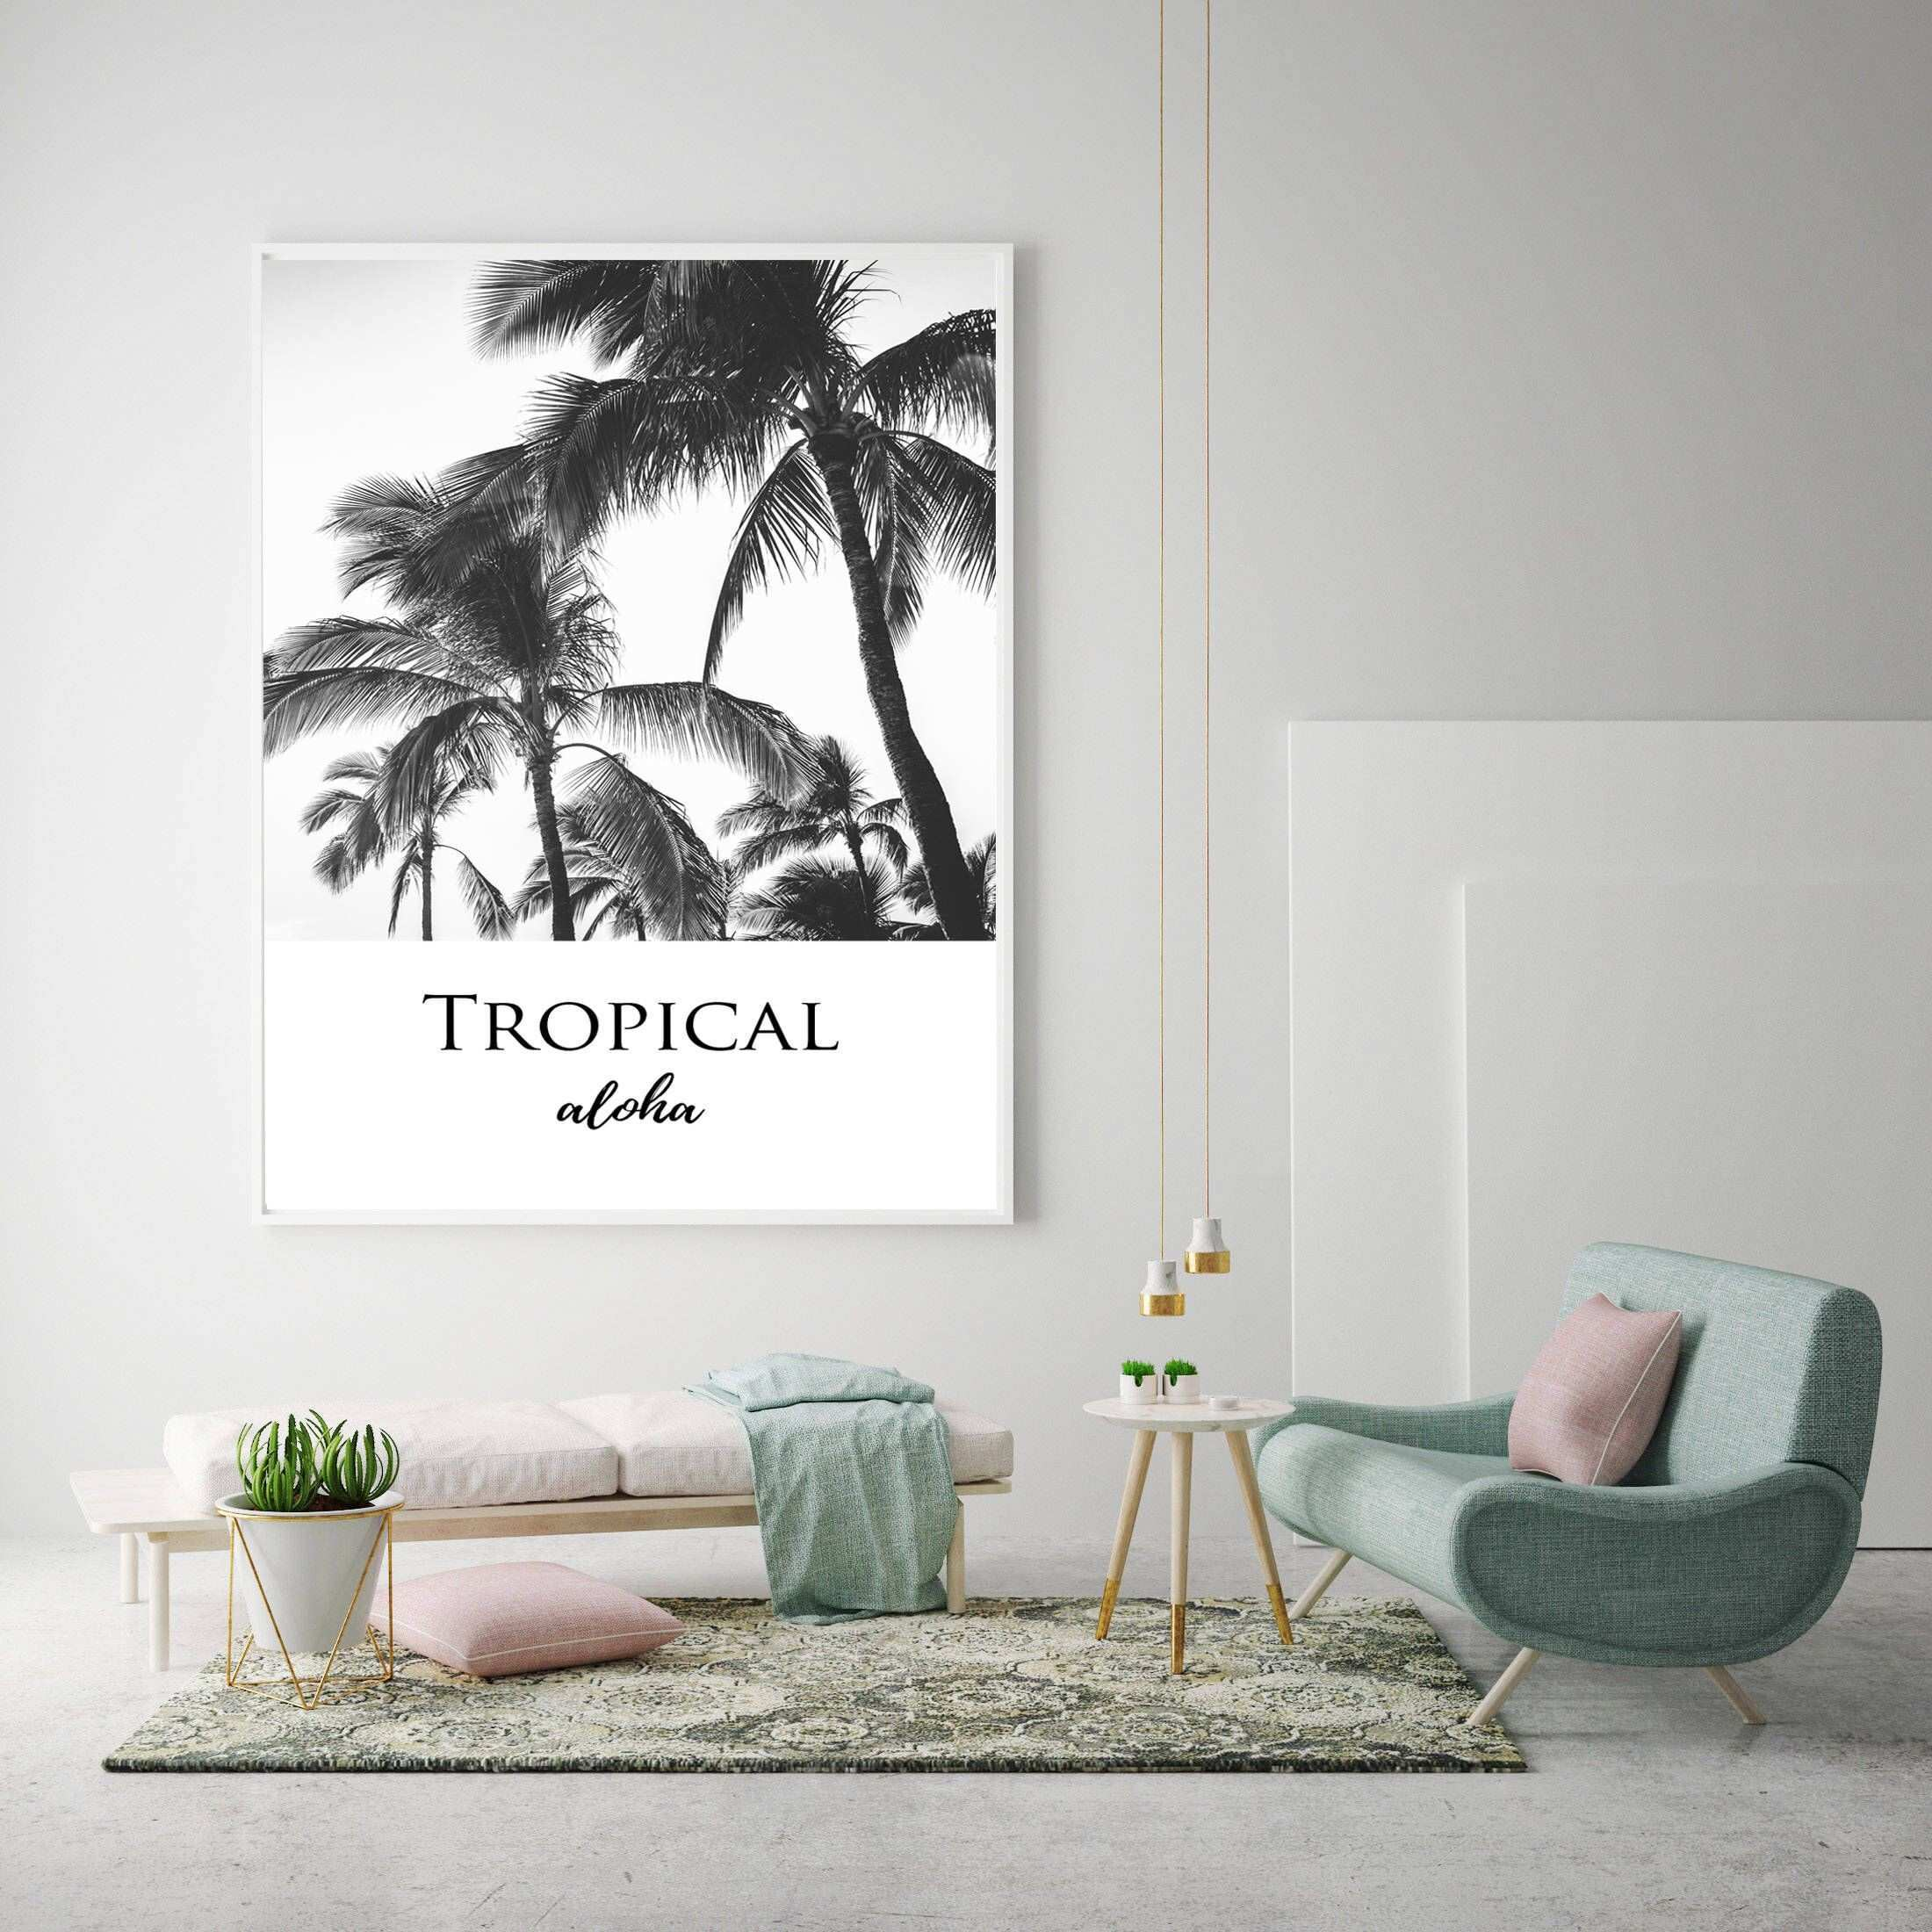 tropical decor palm trees print aloha wall art scandinavian decor